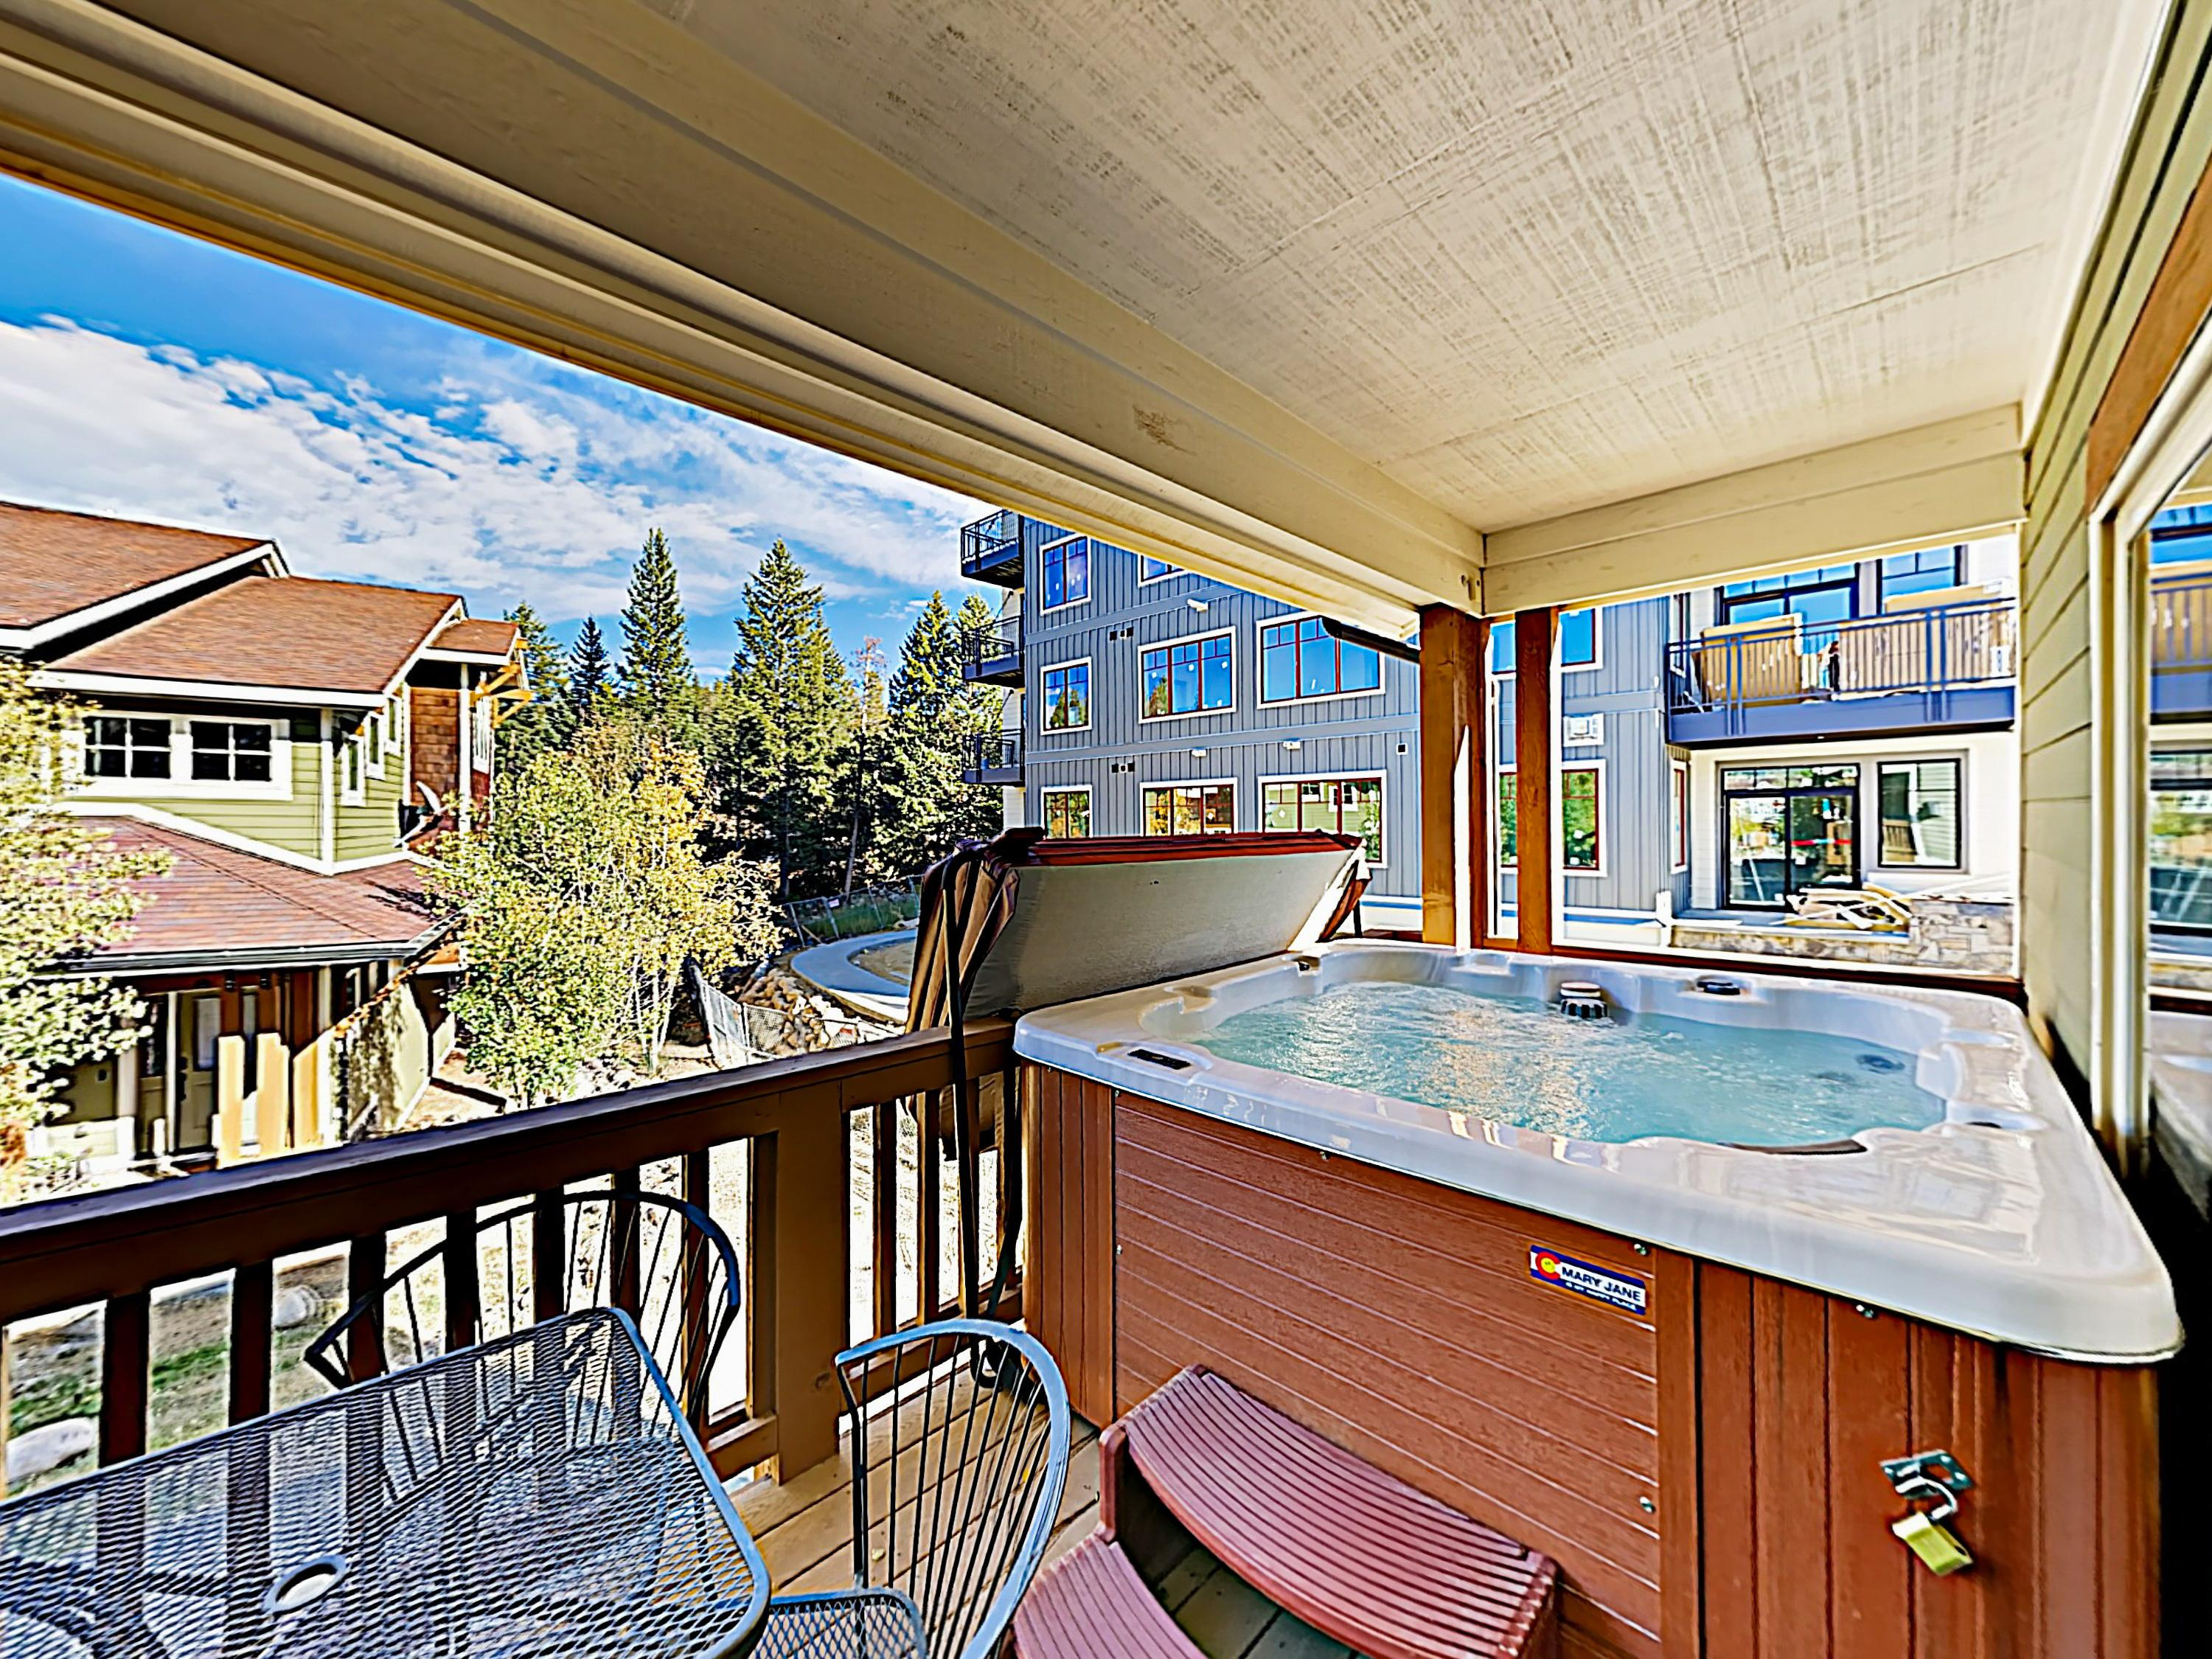 After days on the mountain, relax in your private 6-person hot tub on the balcony.